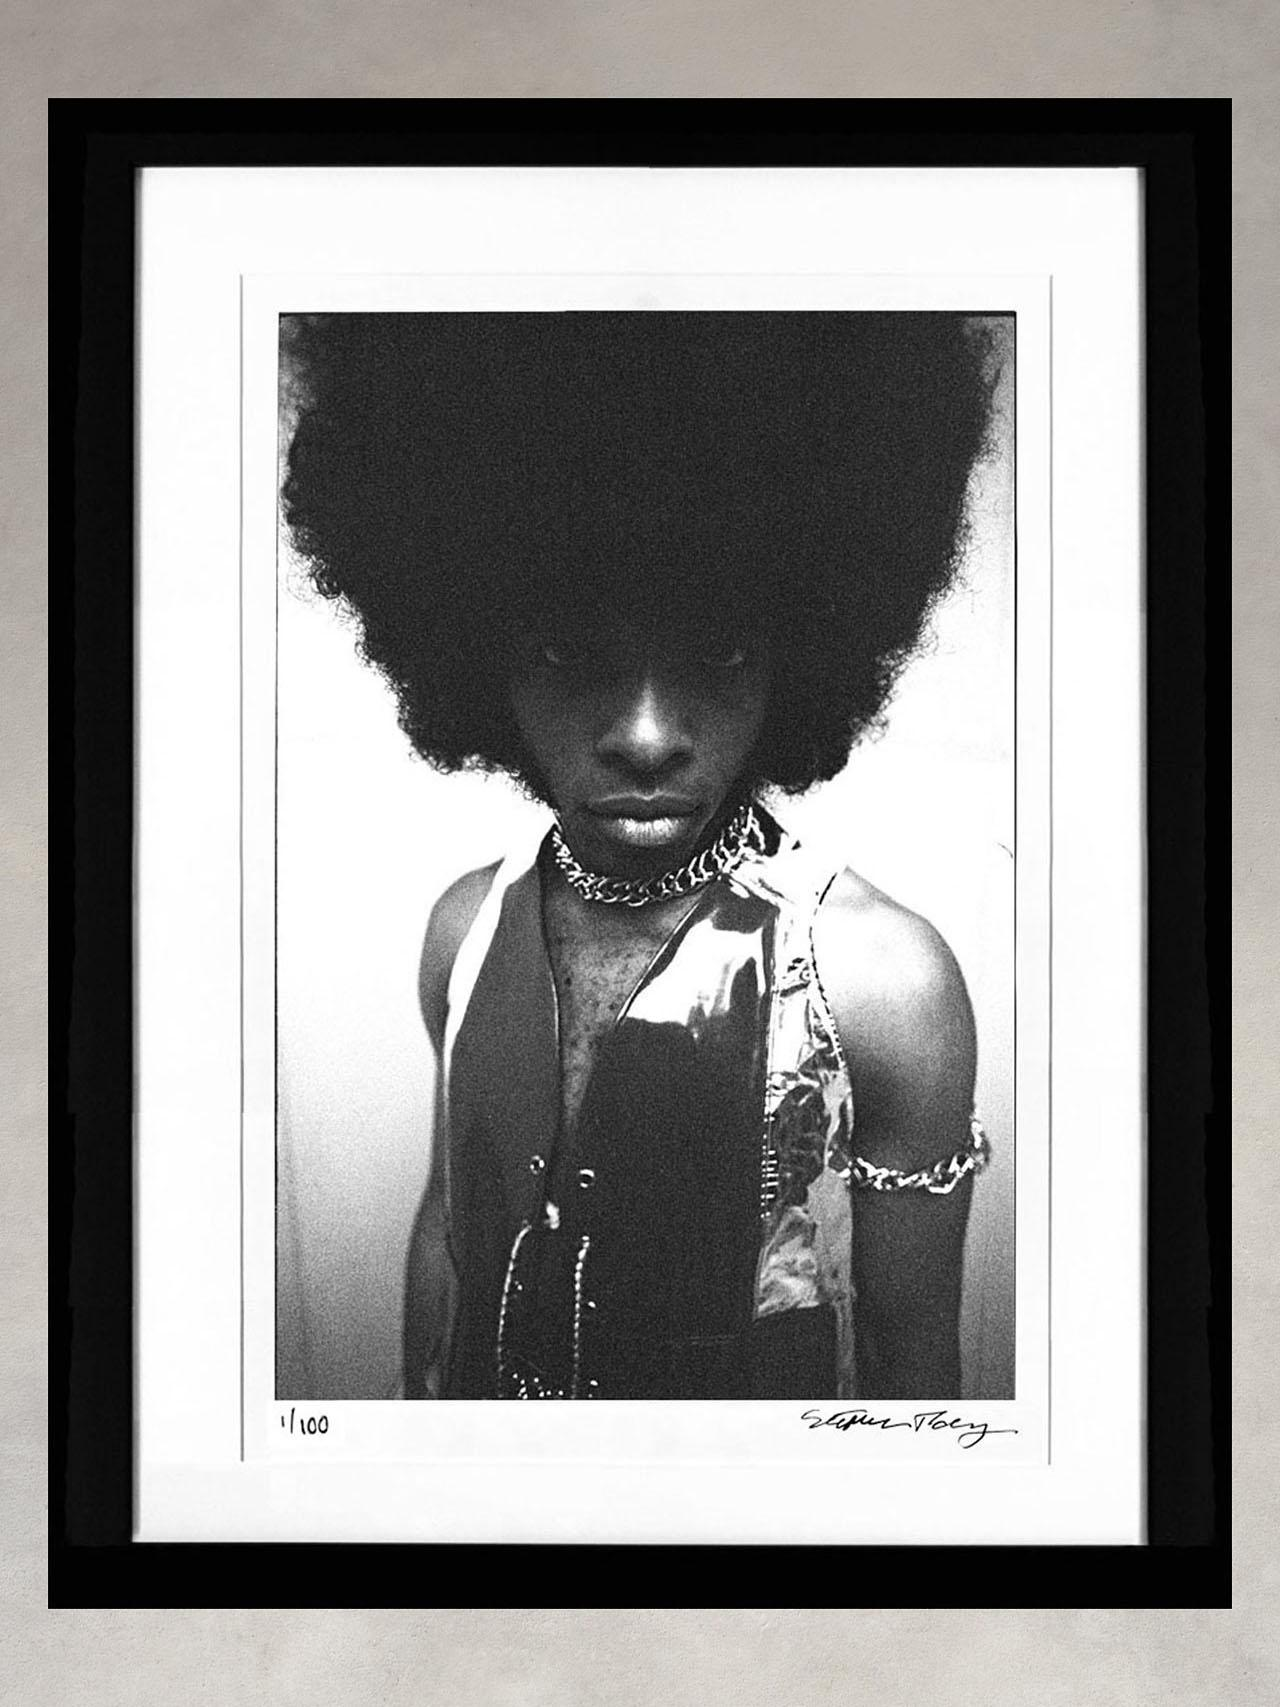 Sly Stone by Stephen Paley